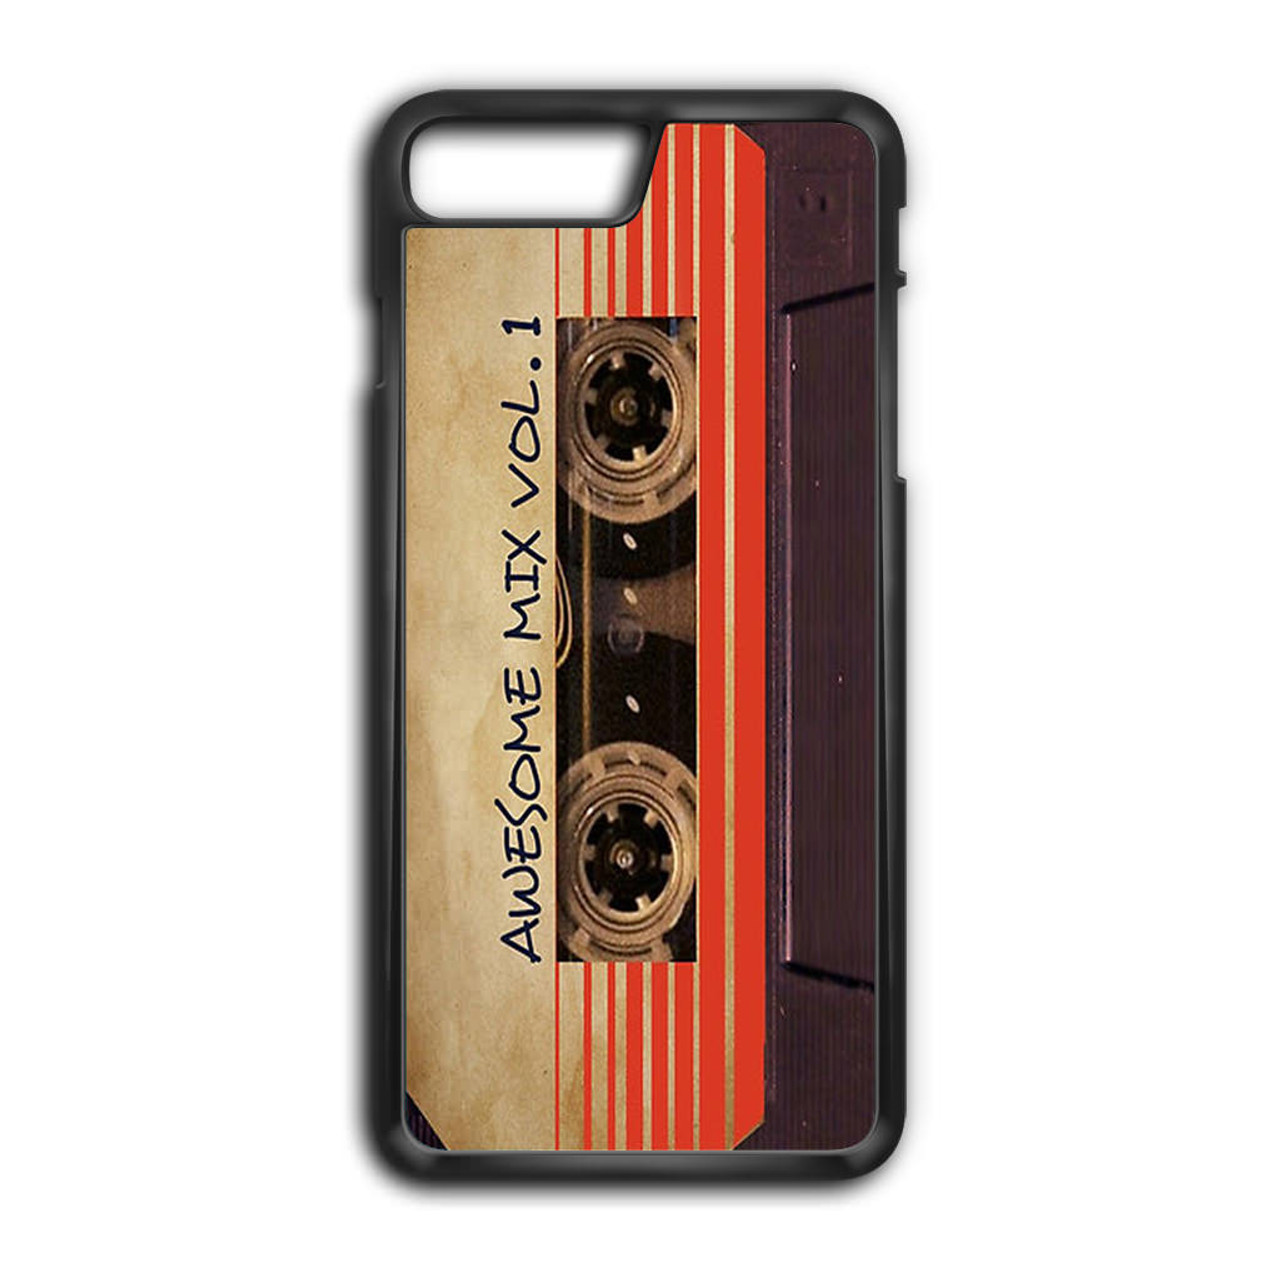 new product be39b 53ebd Awesome Guardians Galaxy iPhone 7 Plus Case